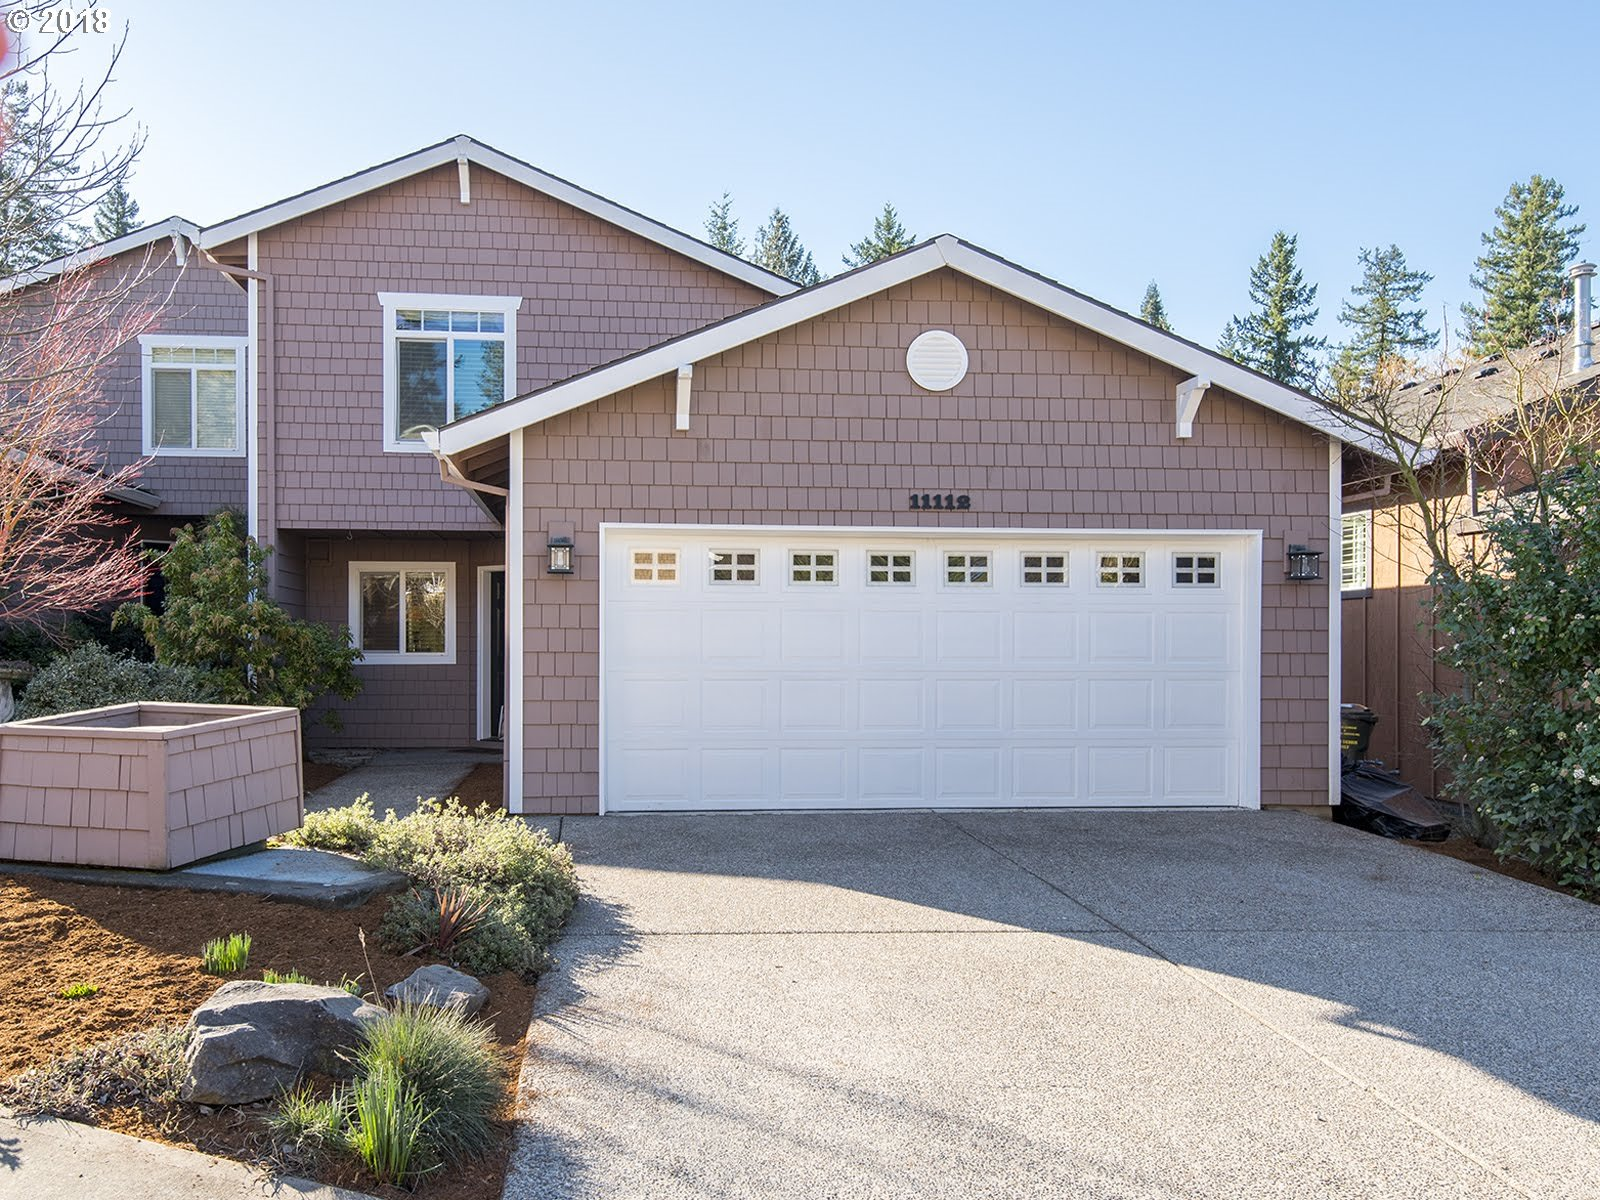 1842 sq. ft 3 bedrooms 2 bathrooms  House For Sale,Portland, OR